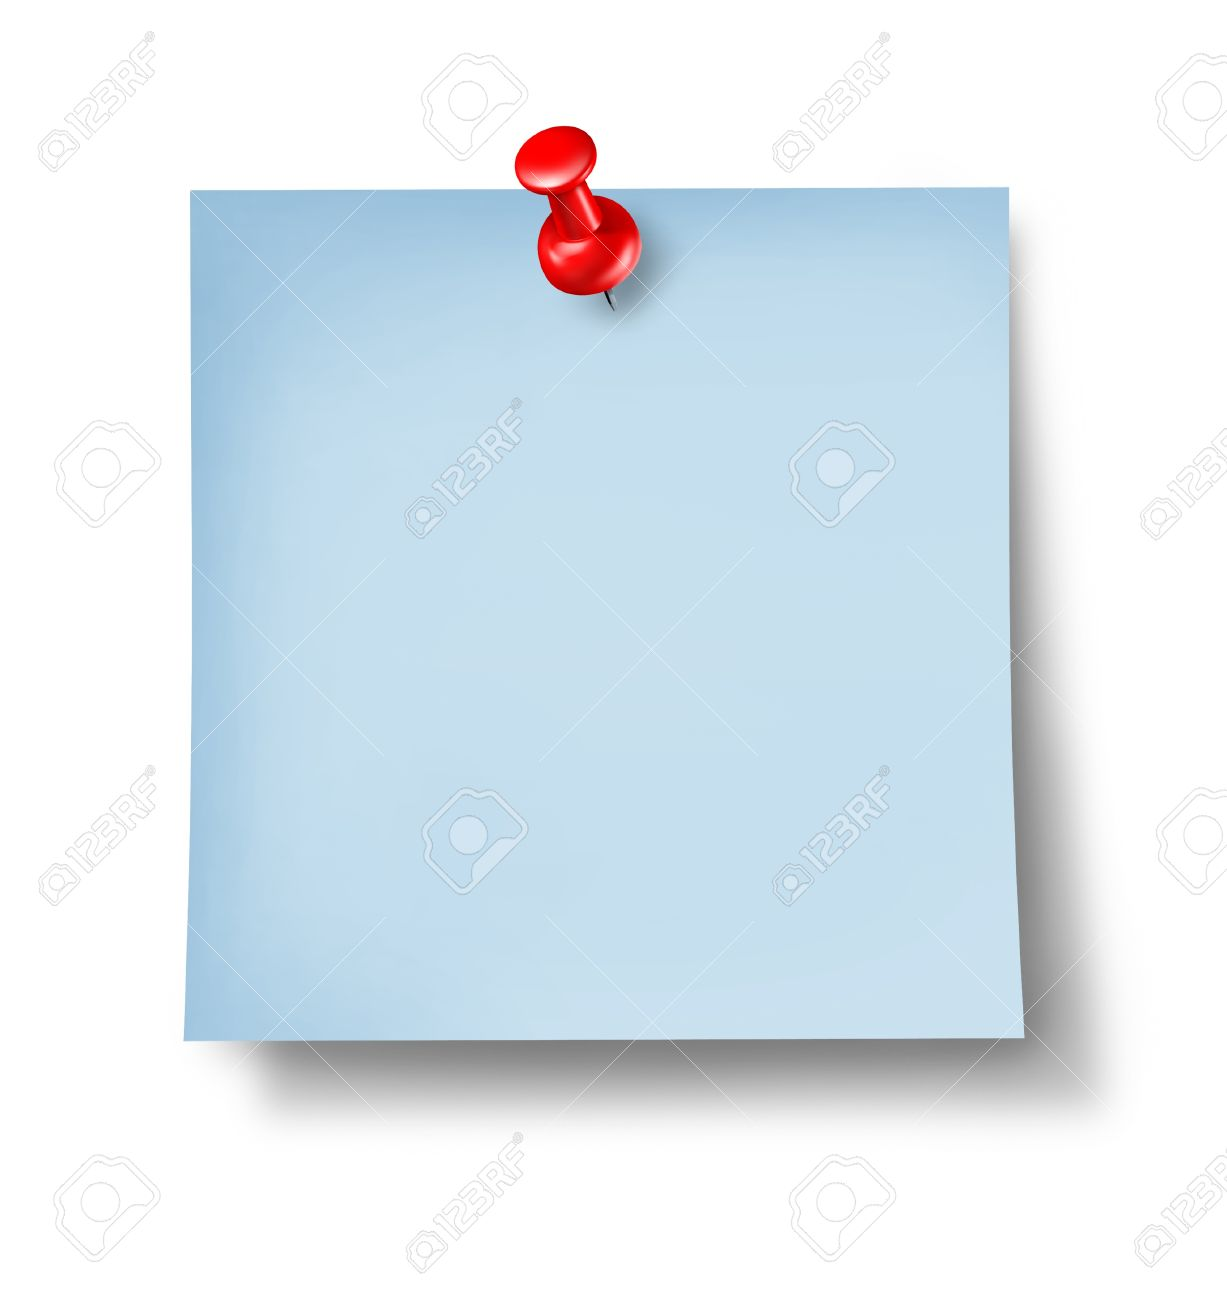 blank blue office note or sticky paper a red thumb tack blank blue office note or sticky paper a red thumb tack on a white background